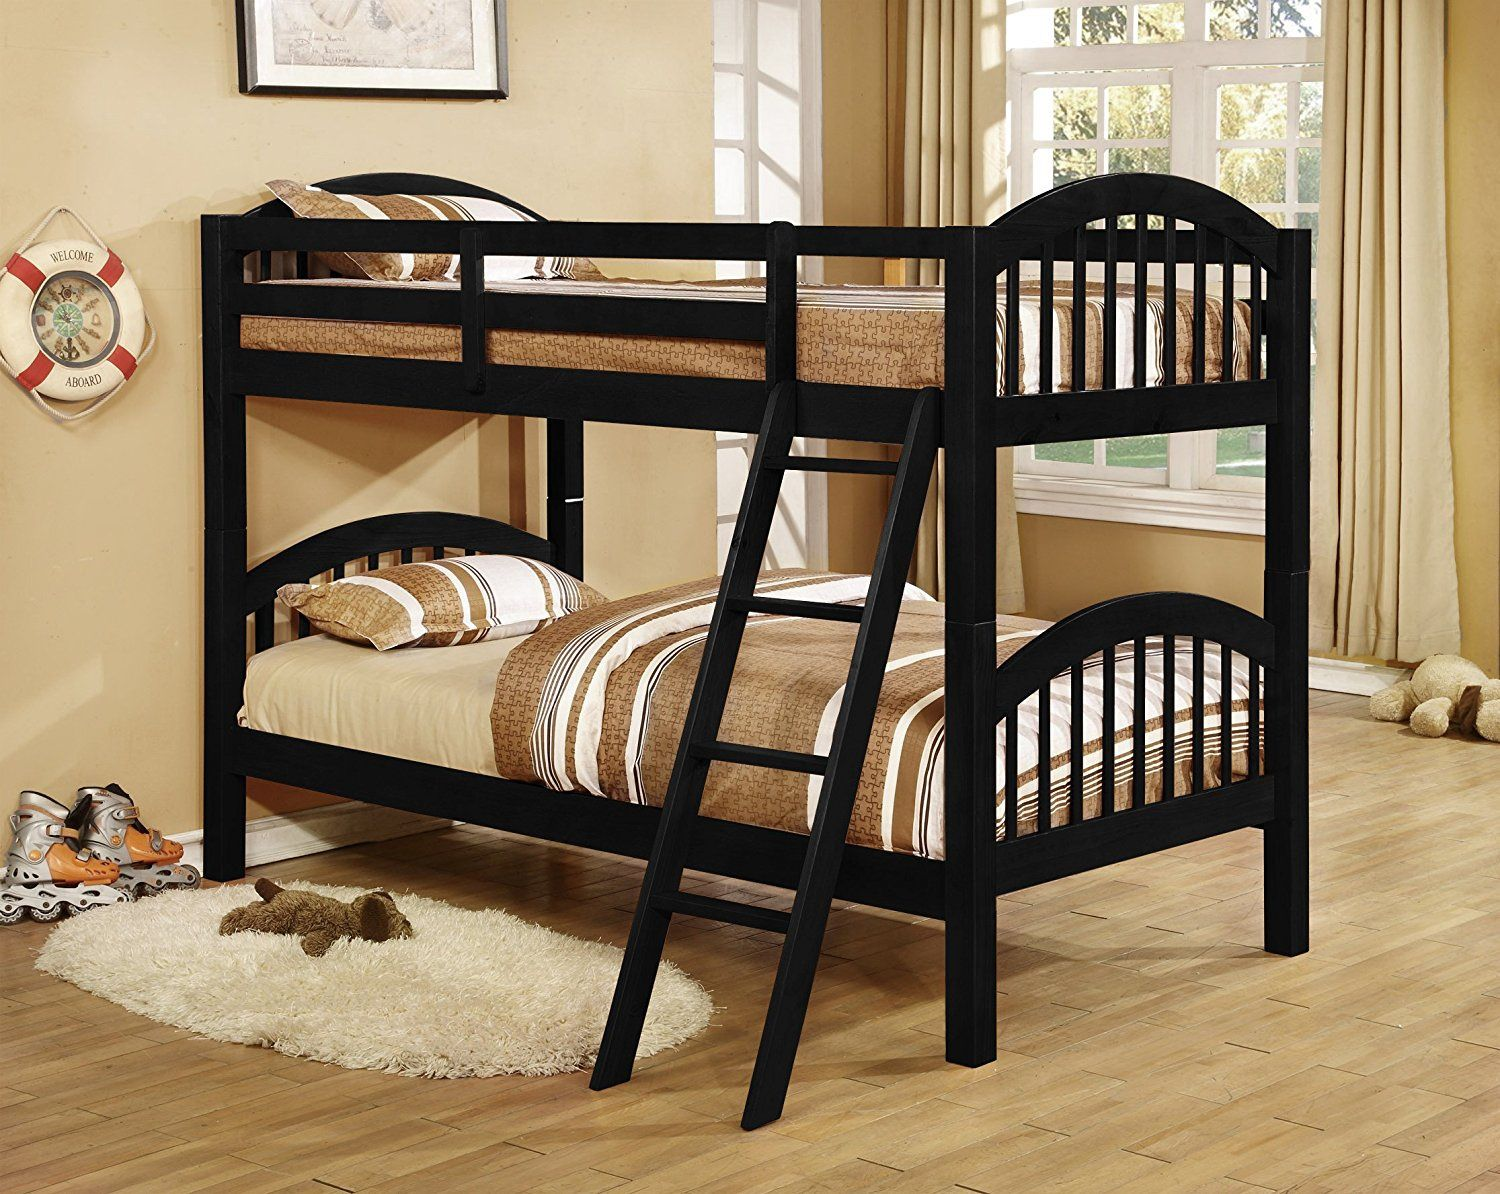 Pin By Neby On Bedroom Apartments Ideas Bunk Beds Twin Bunk Beds